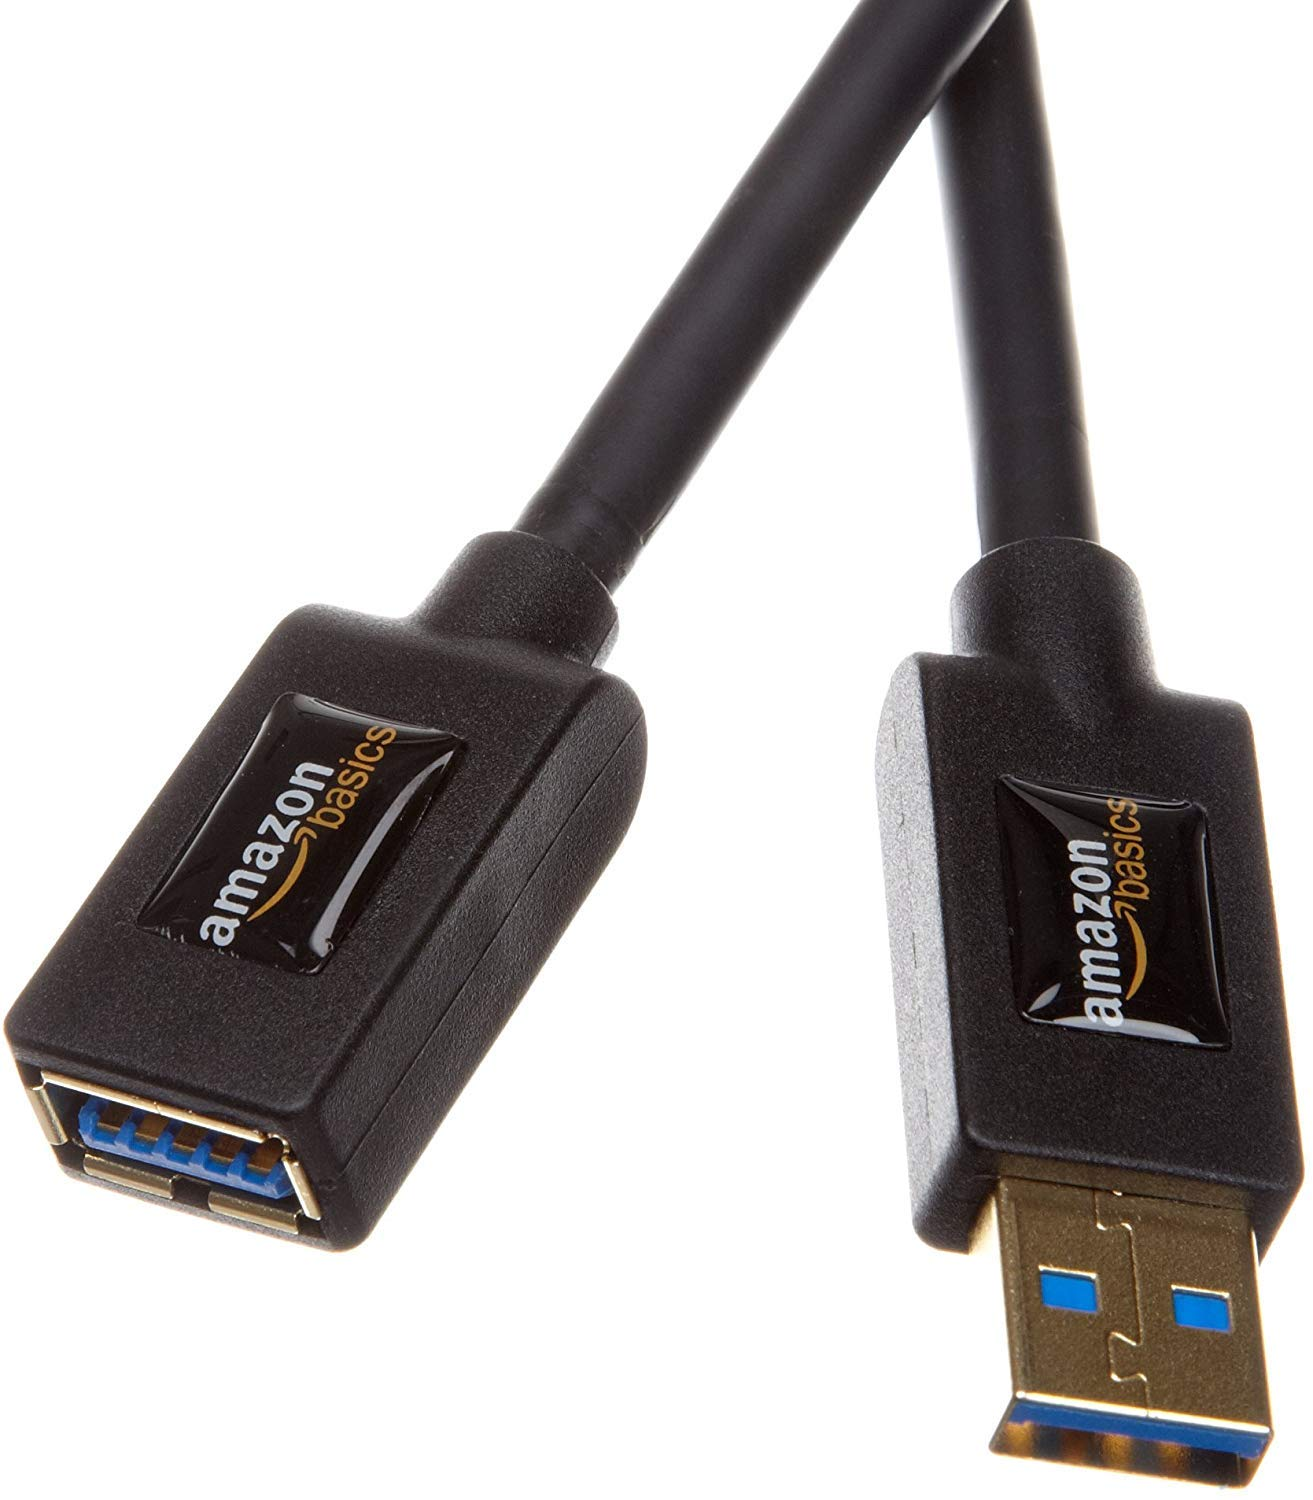 AmazonBasics USB 3.0 Extension Cable to connect phone to Tv